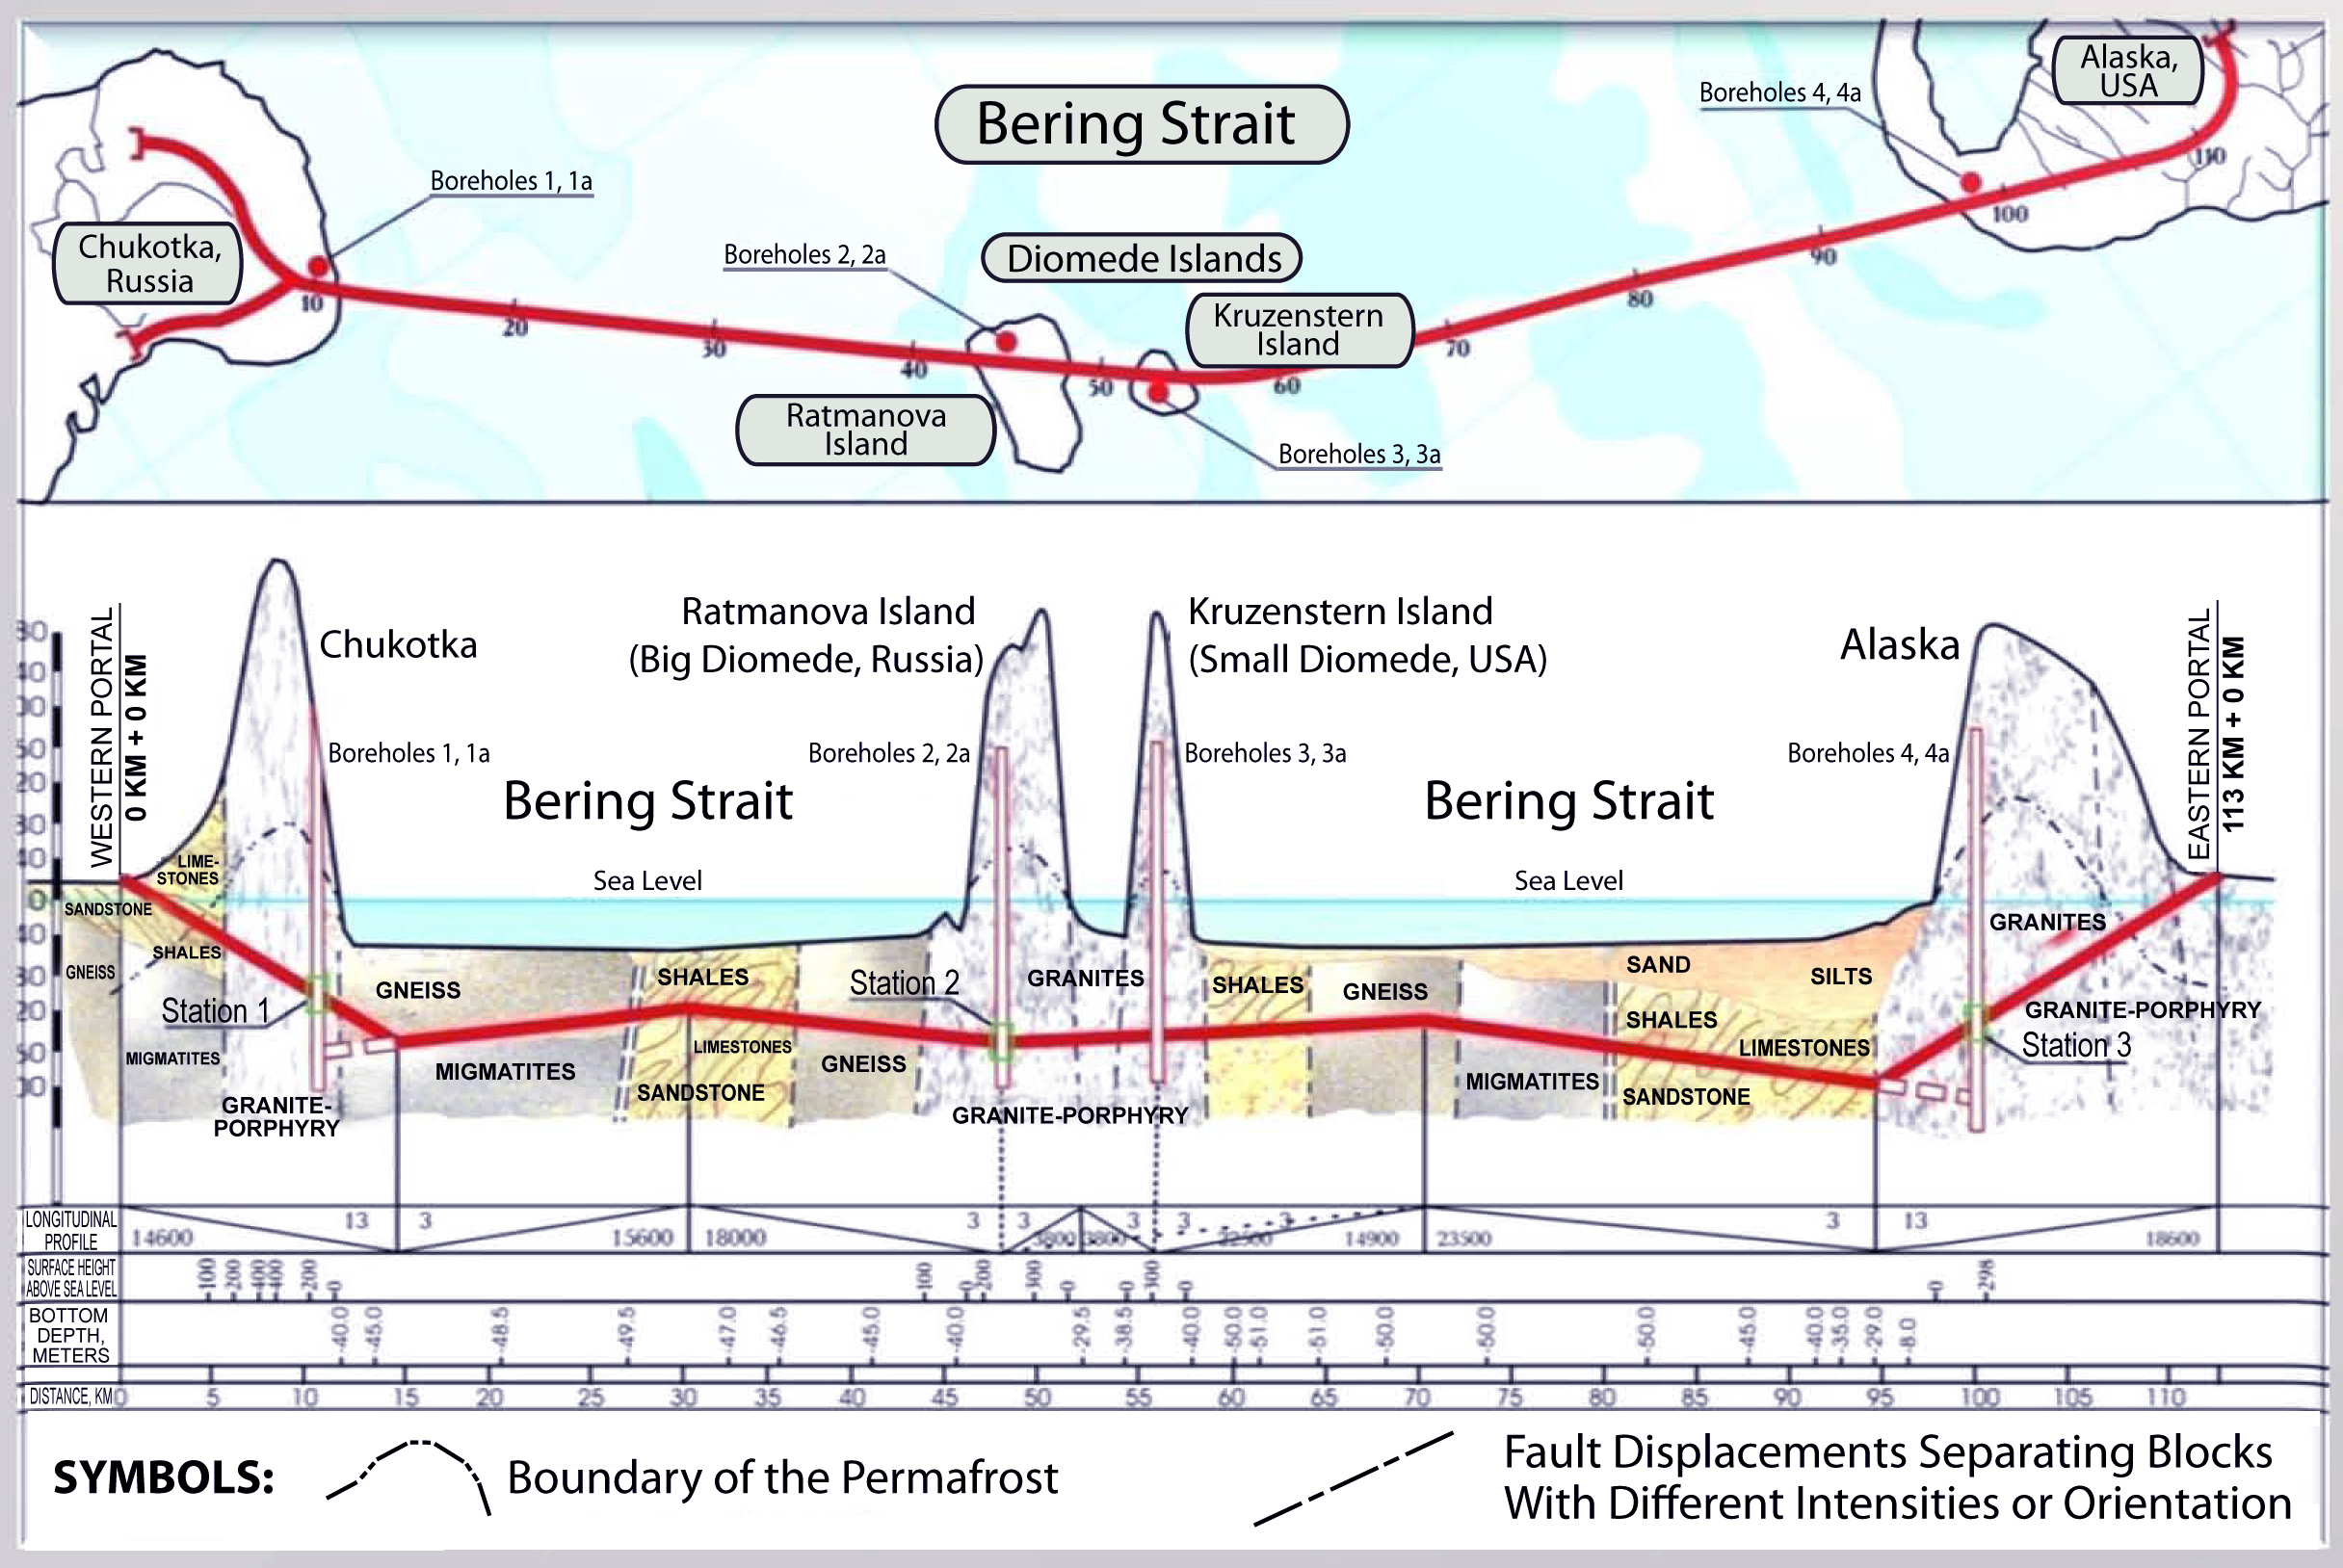 bering strait tunnel cross section between alaska usa and chukotka russia